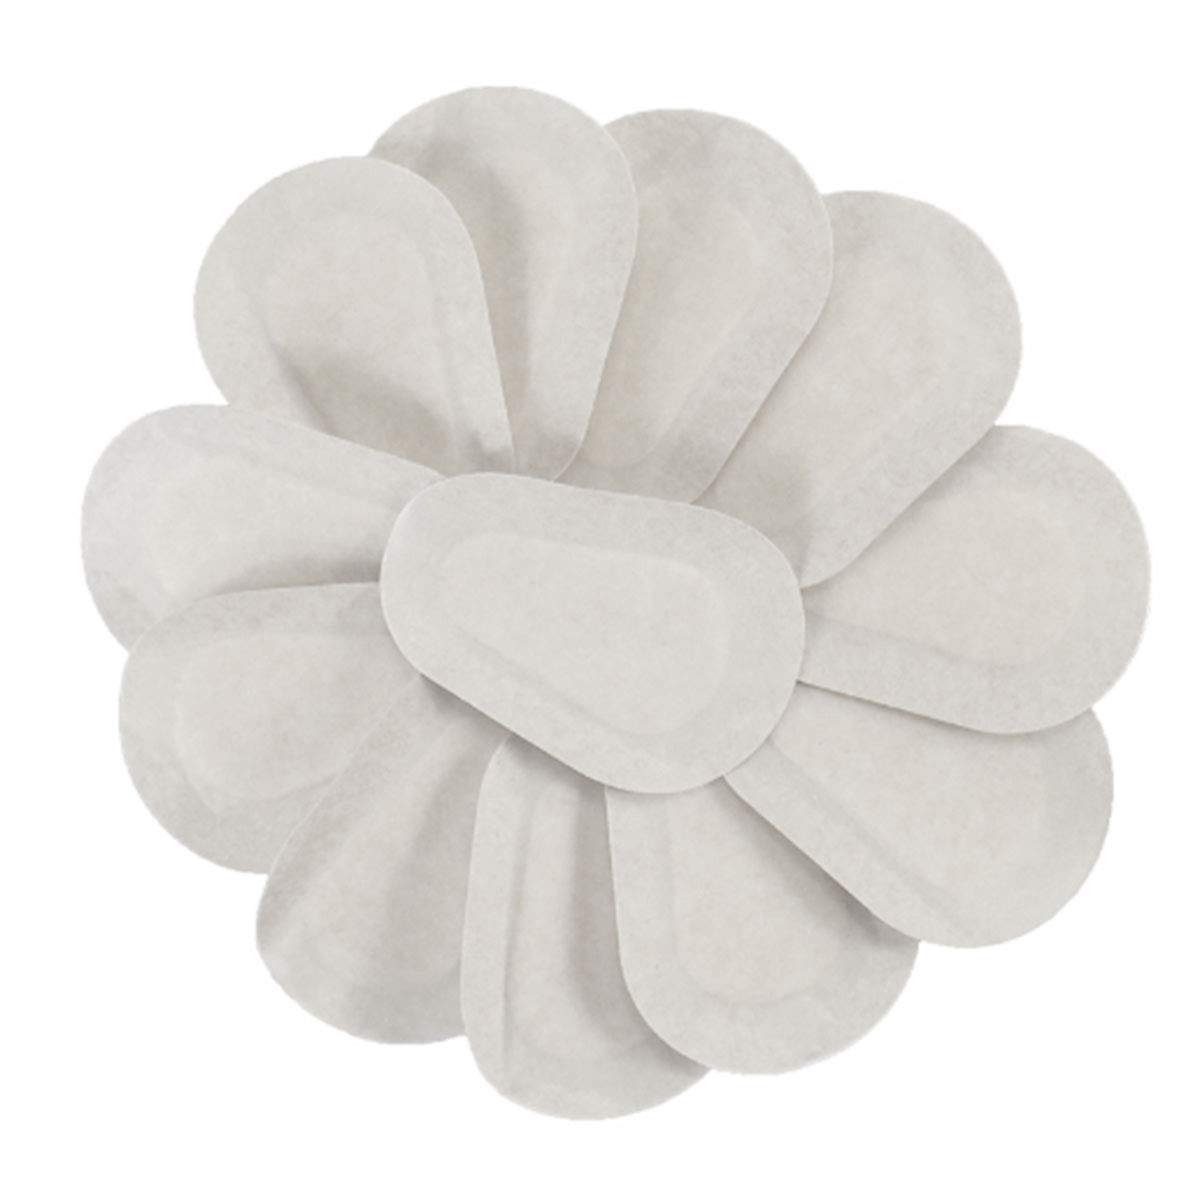 Direct sale of manufacturer OSALADI 20pcs Sterile Nonwoven Eye Pads Patch Factory outlet Post Operative